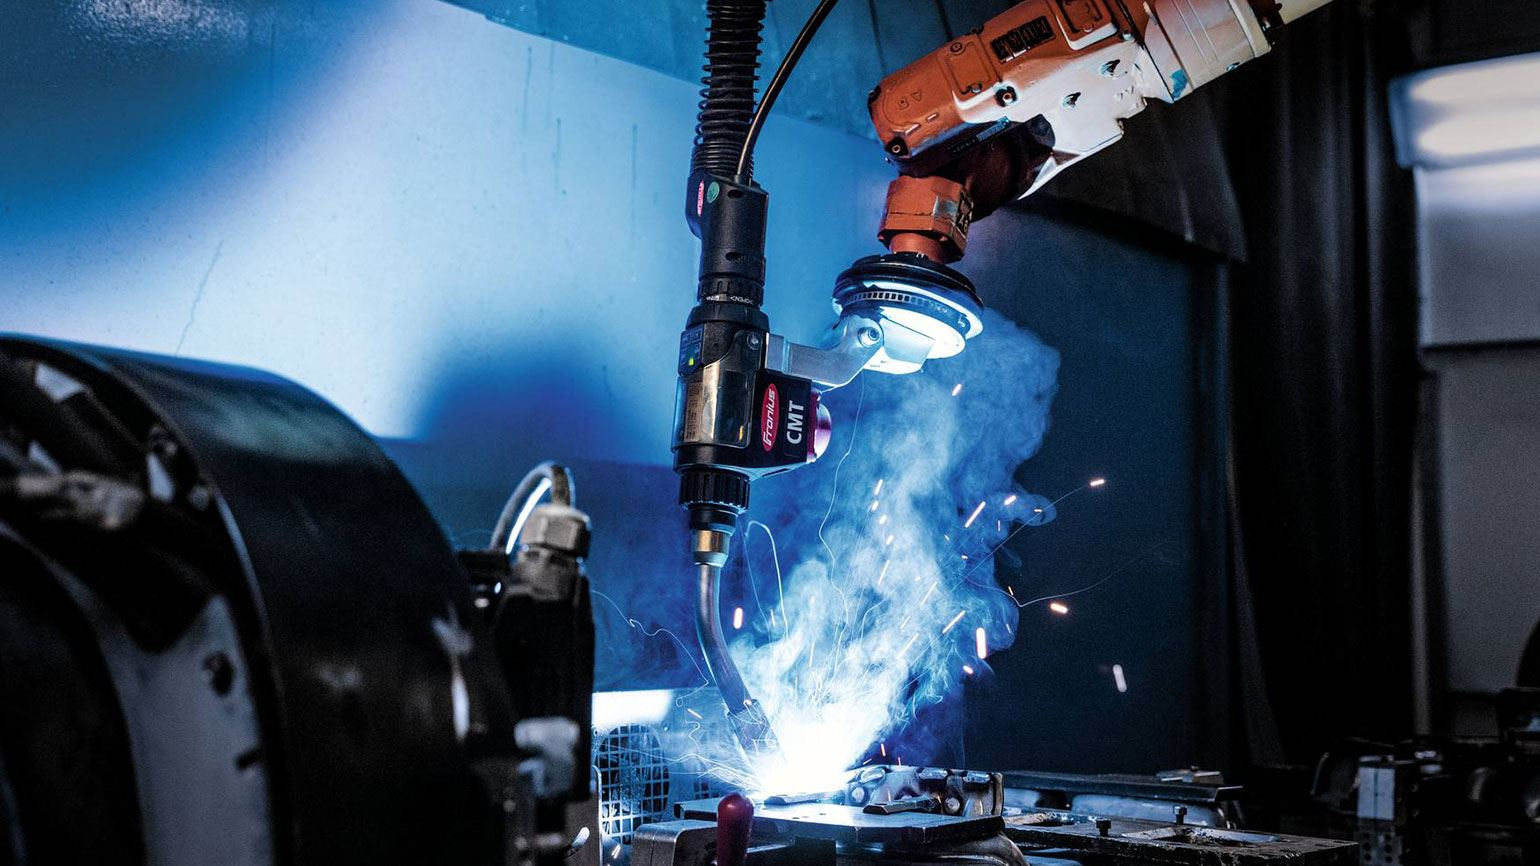 Robotic Welding With The Cmt Welding Process Magazine